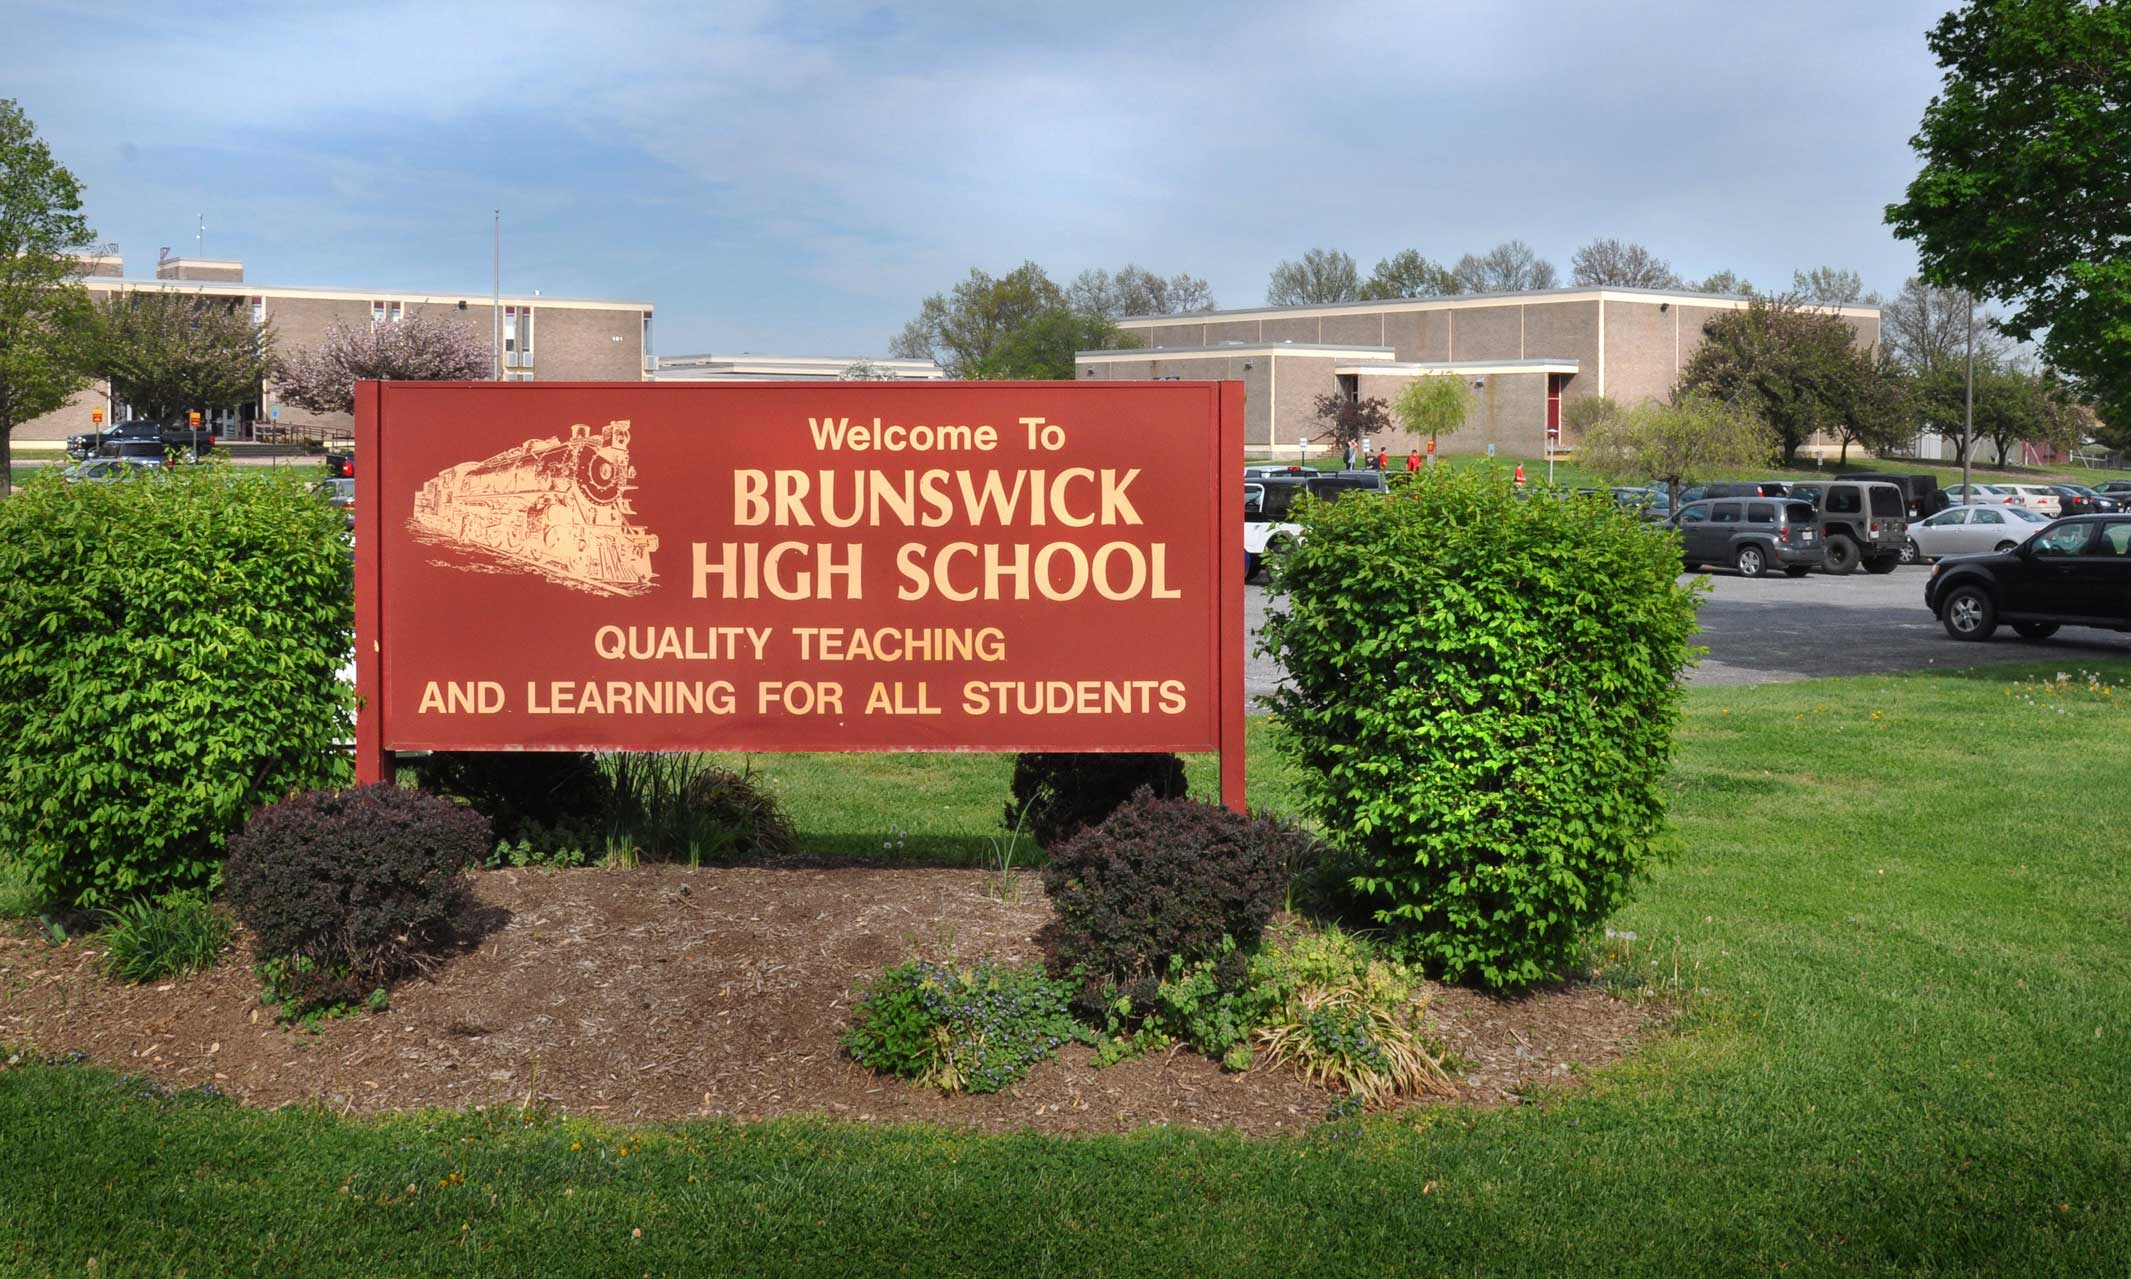 Brunswick_High_School_DSC_0383.jpg